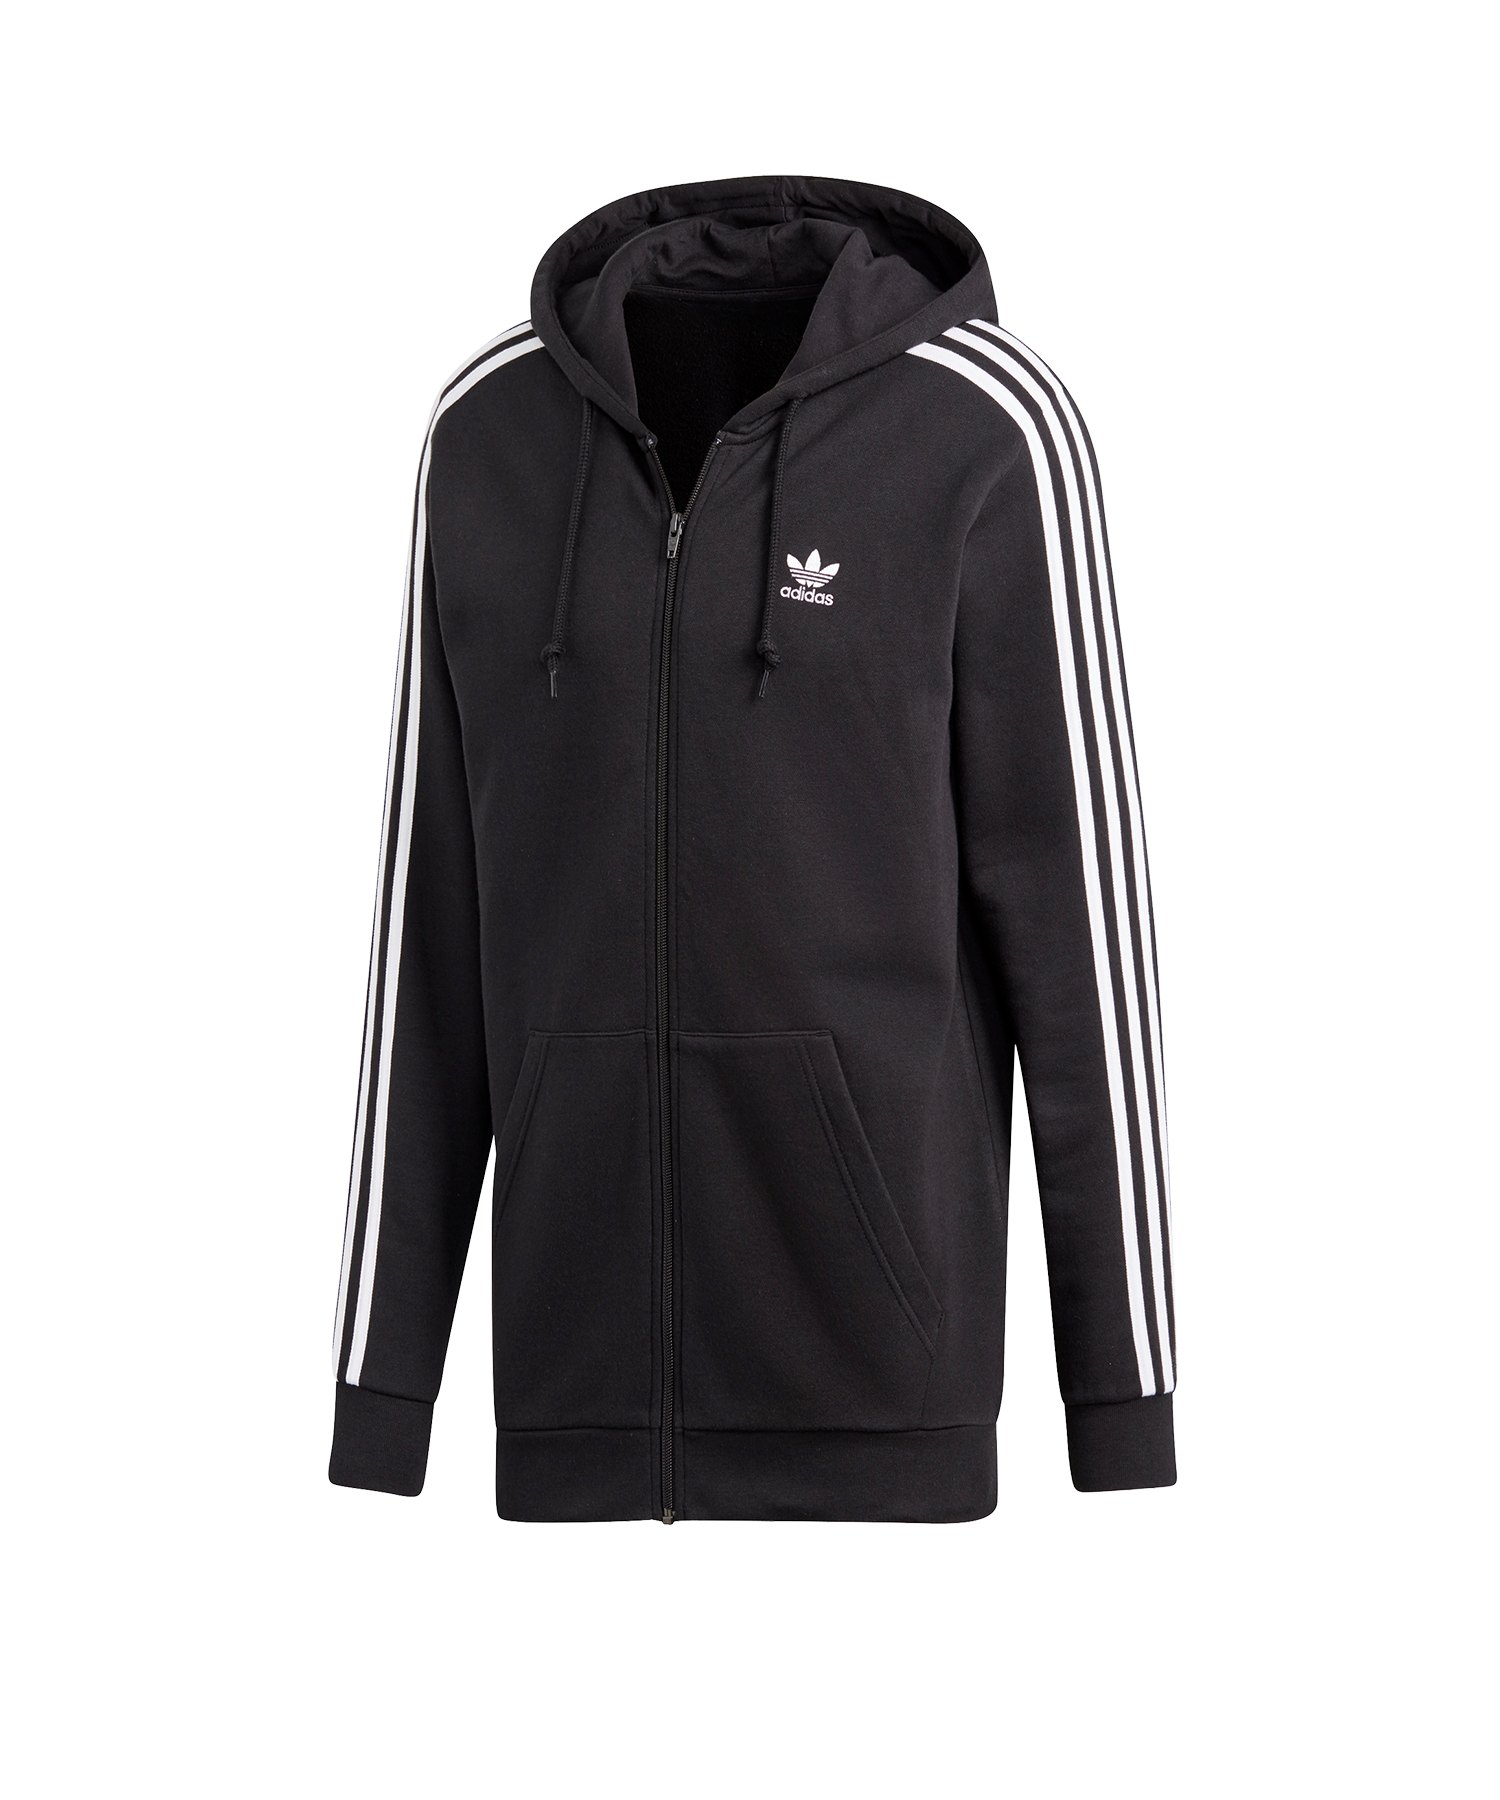 adidas Originals 3 Stripes Kapuzenjacke Schwarz